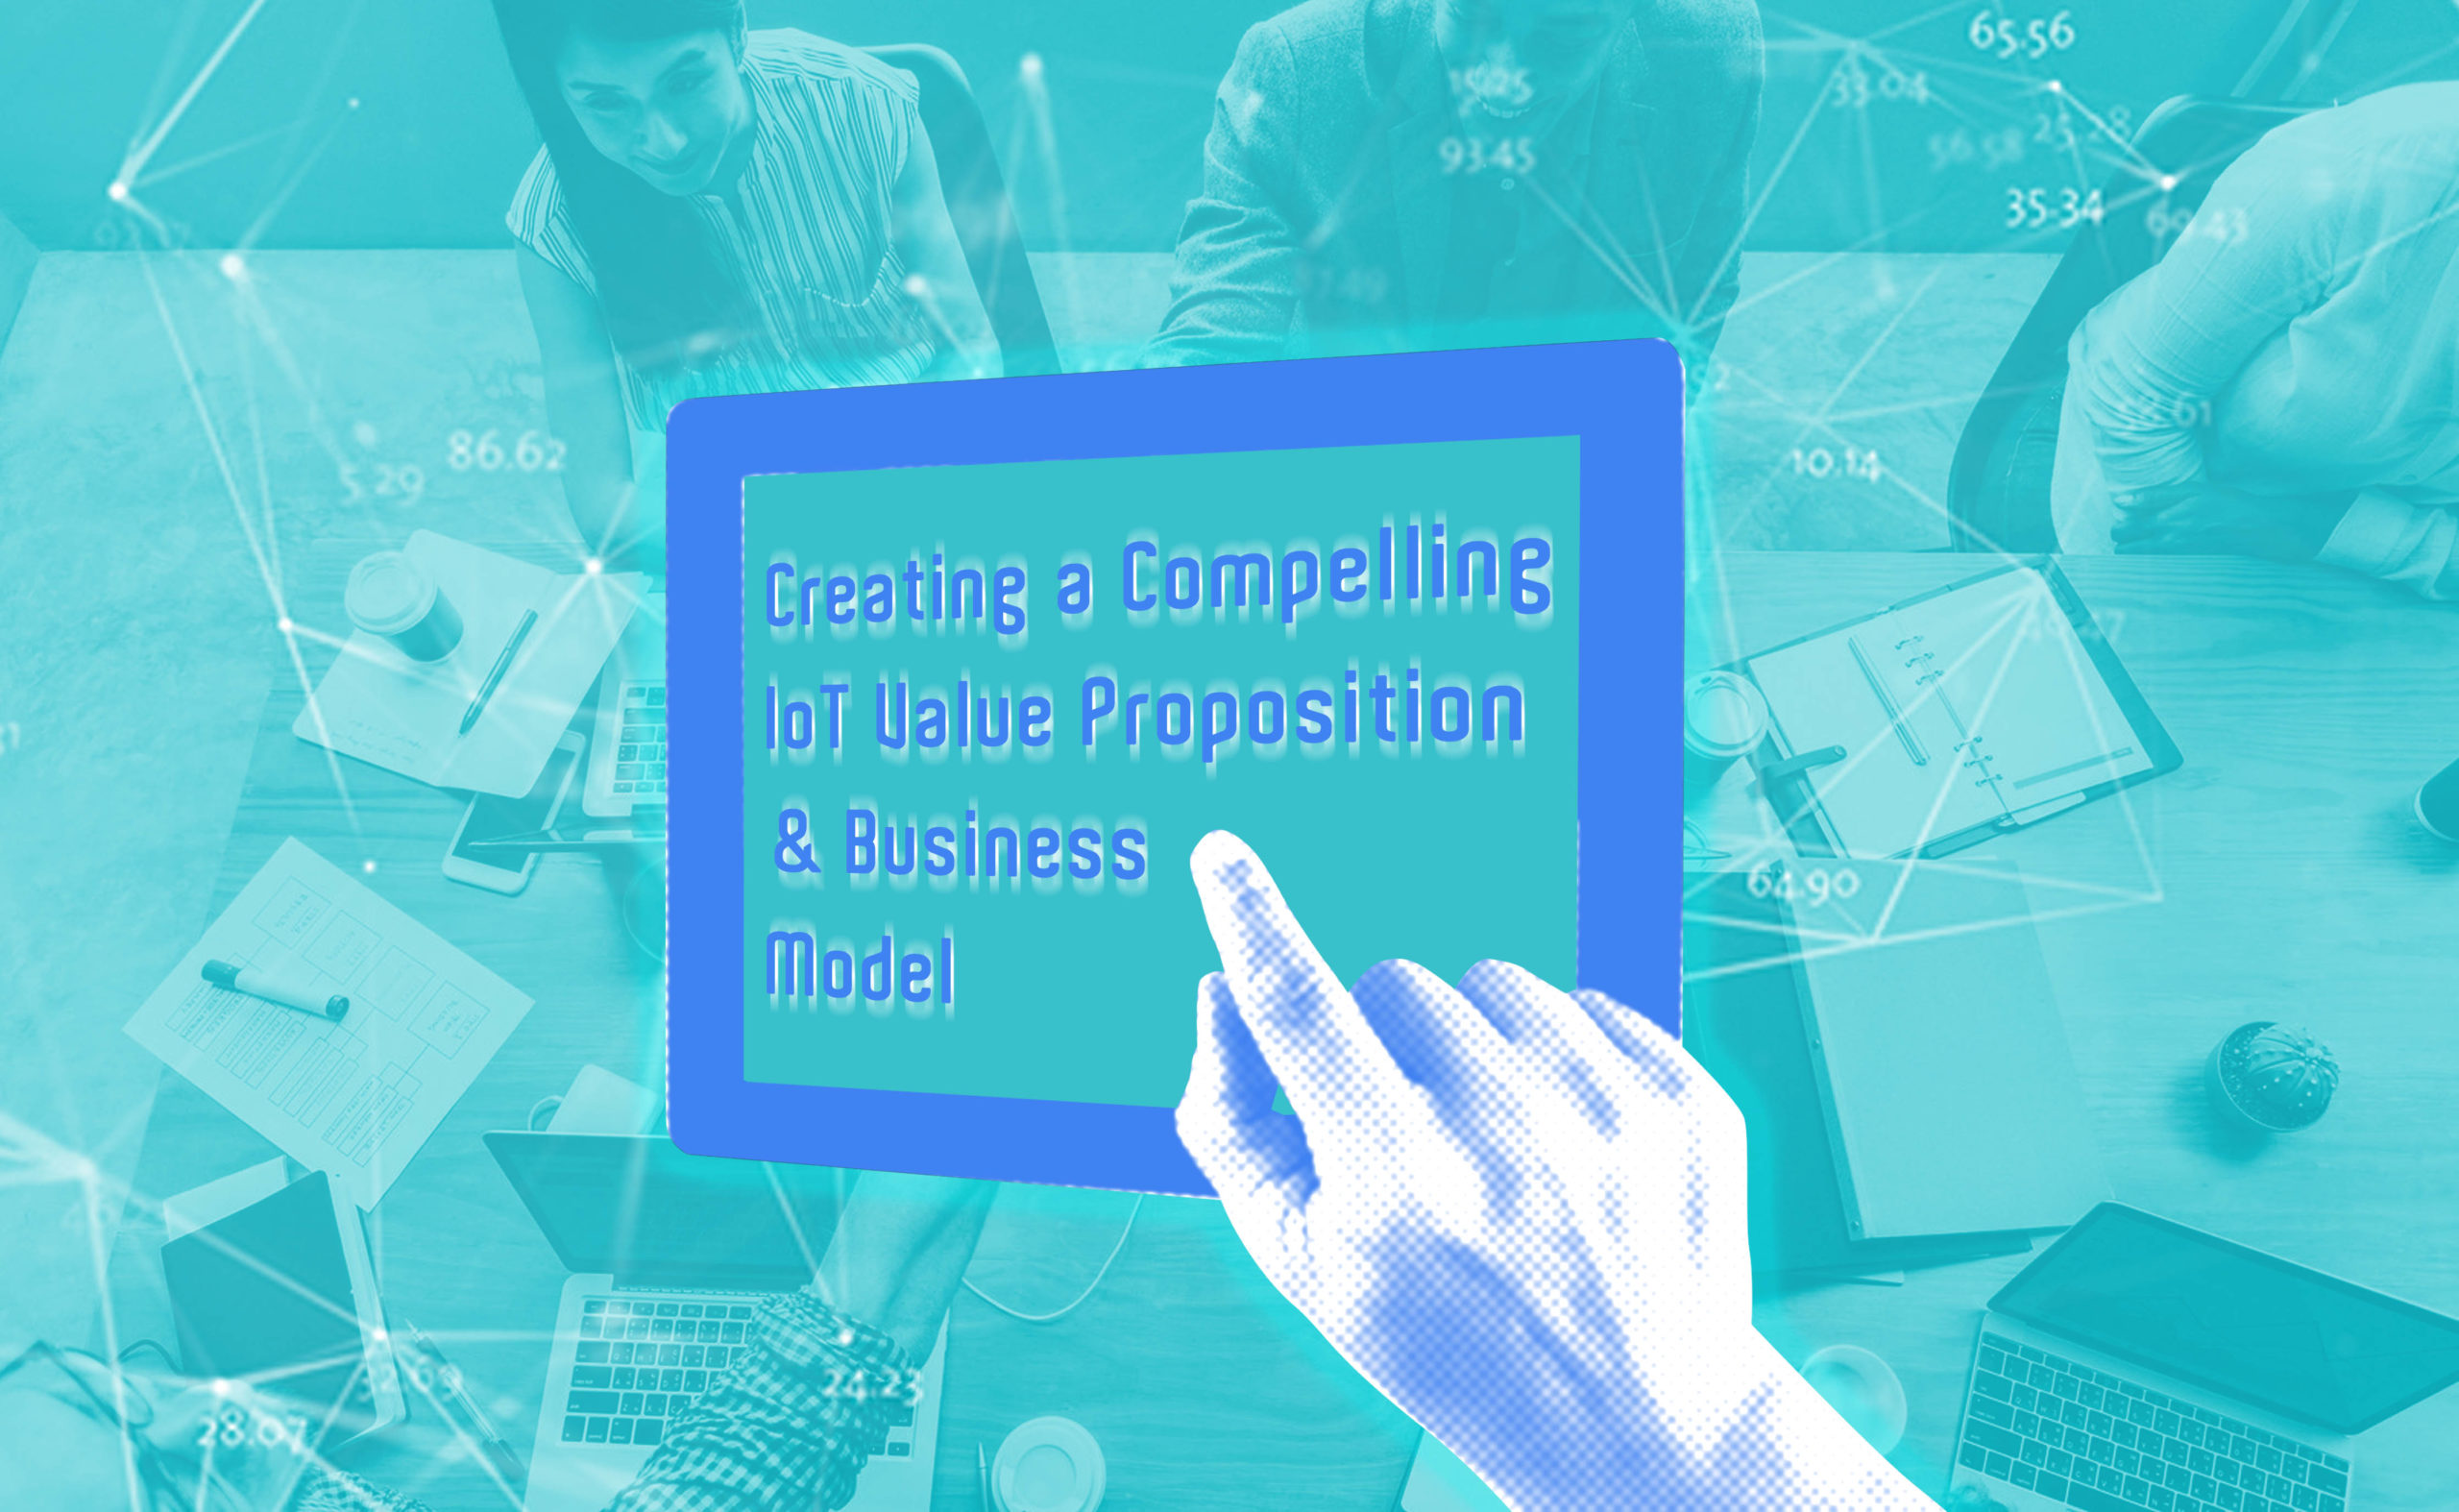 Creating a Compelling IoT Value Proposition & Business Model